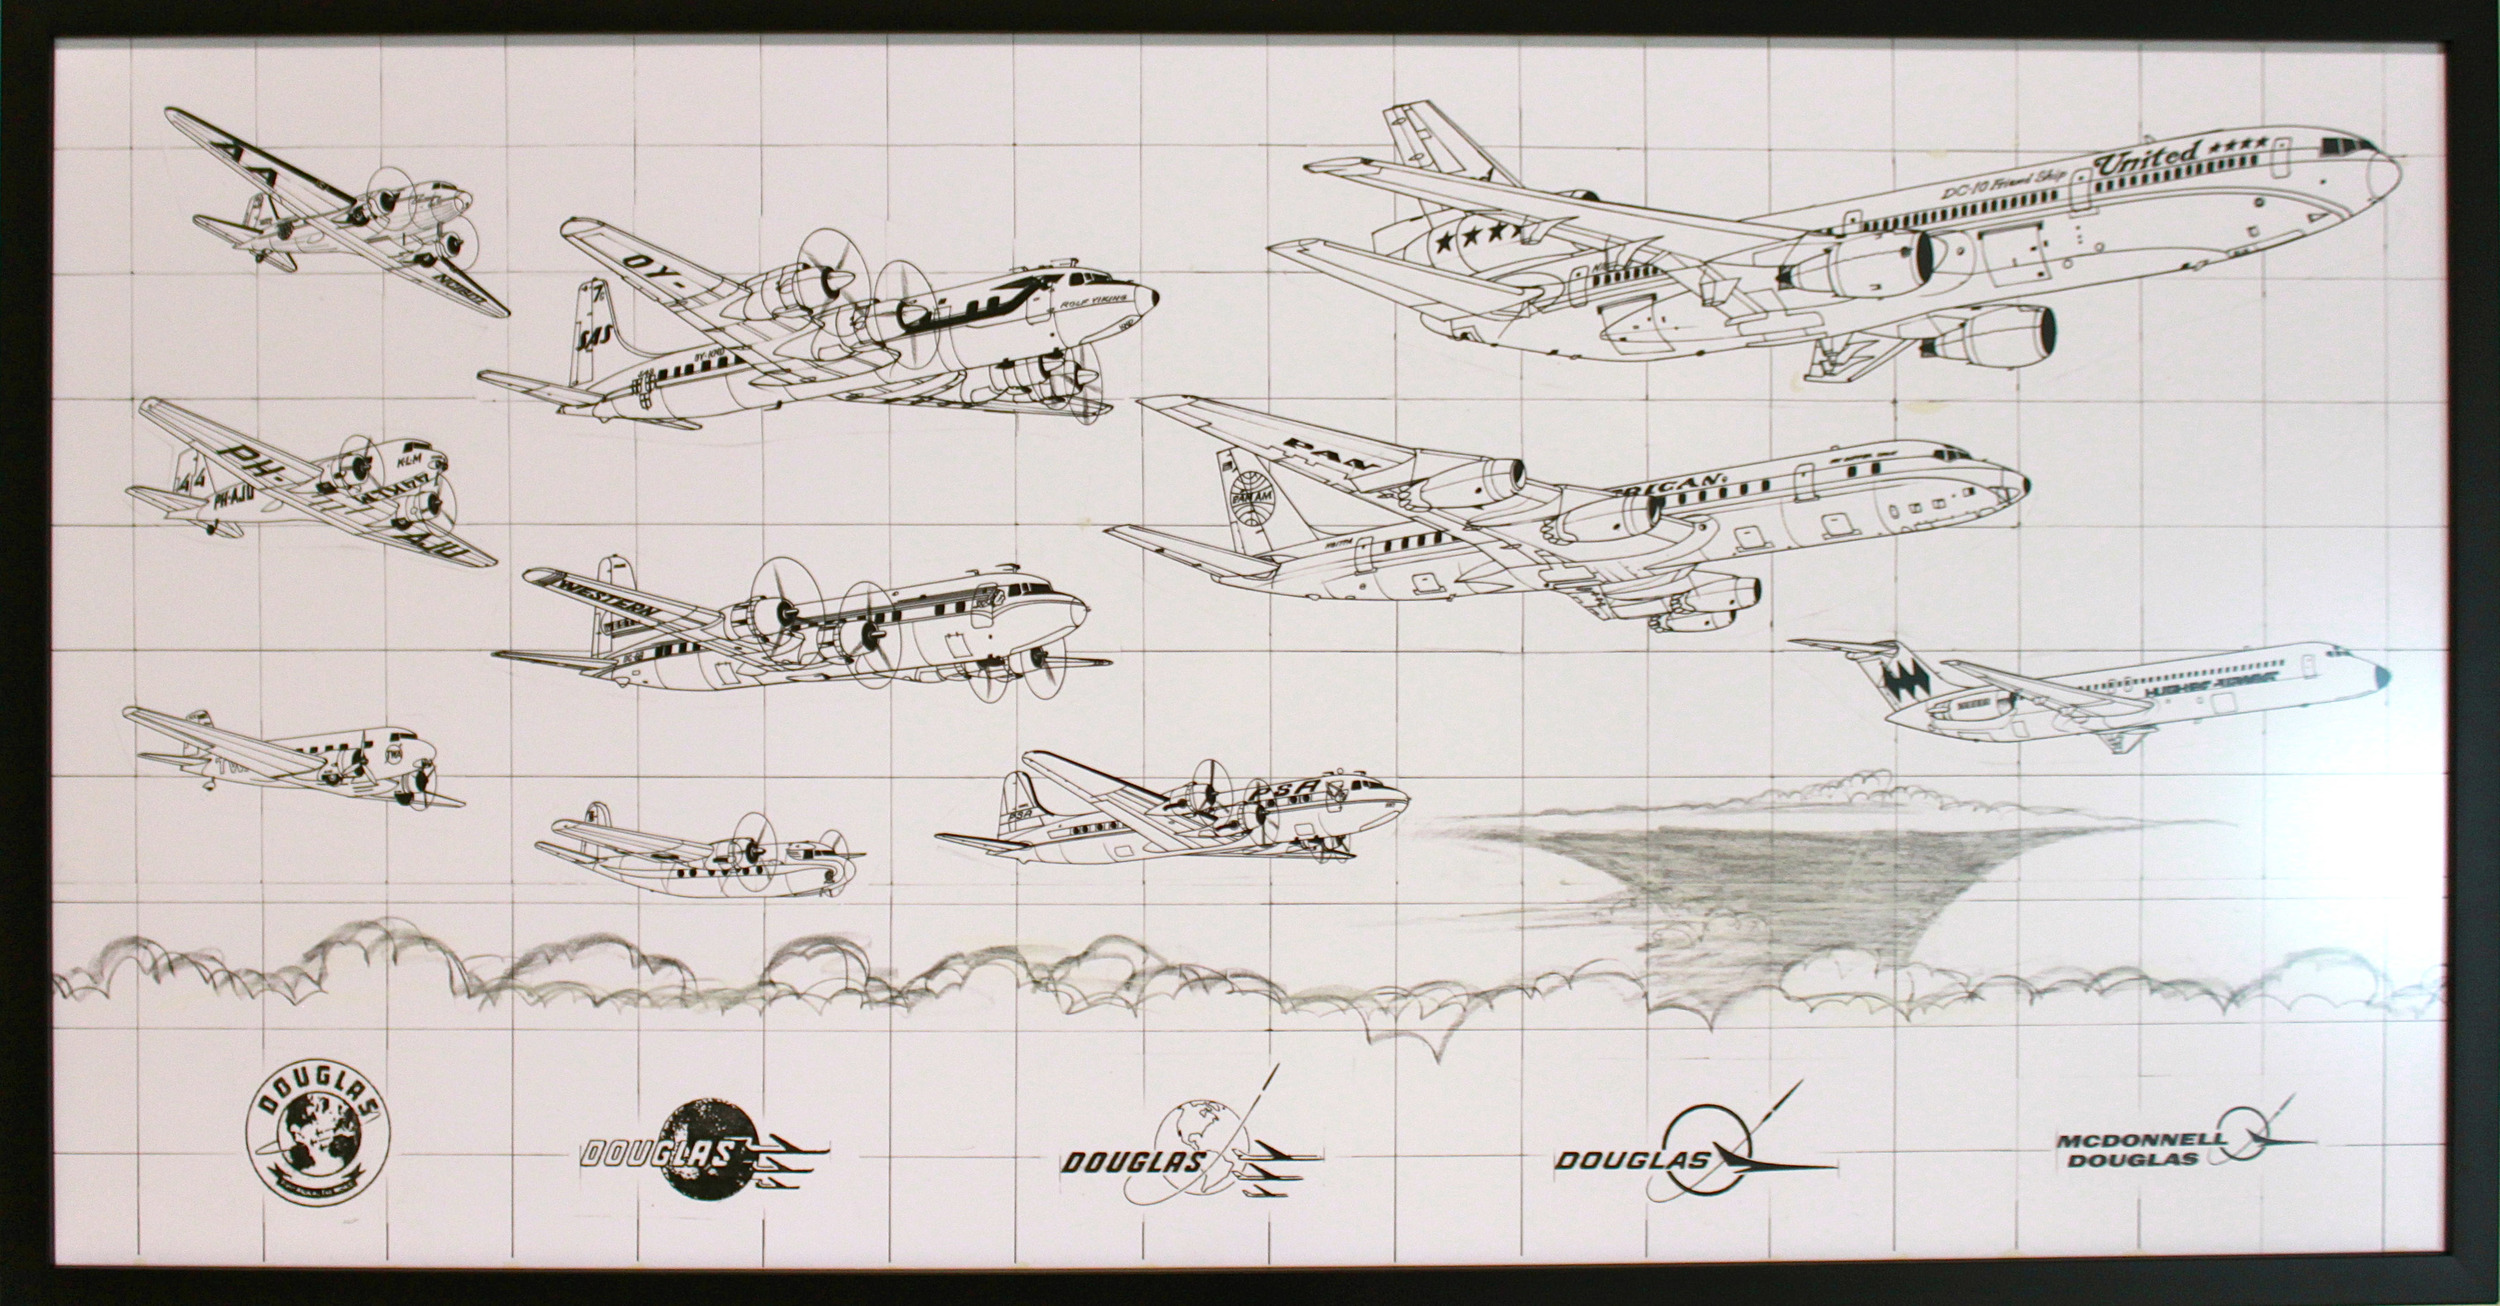 An artist sketch showing the evolution of Douglas commercial aircraft and their company logo.  (San Diego Air & Space Museum)